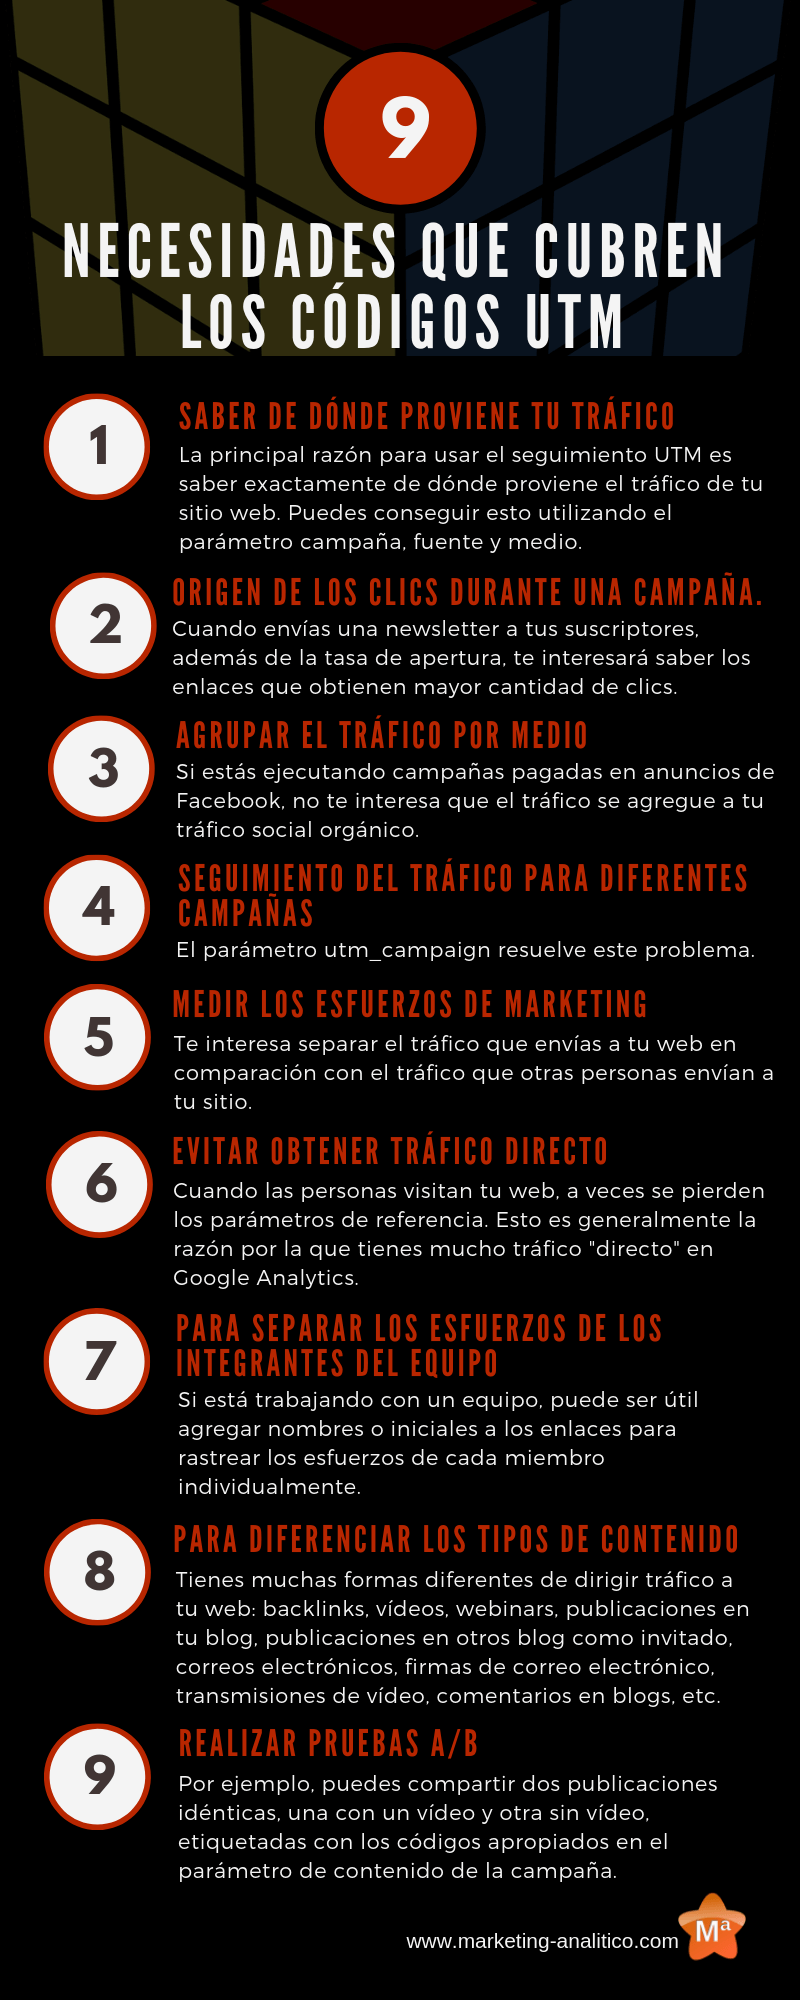 Codigos UTM en Google Analytics